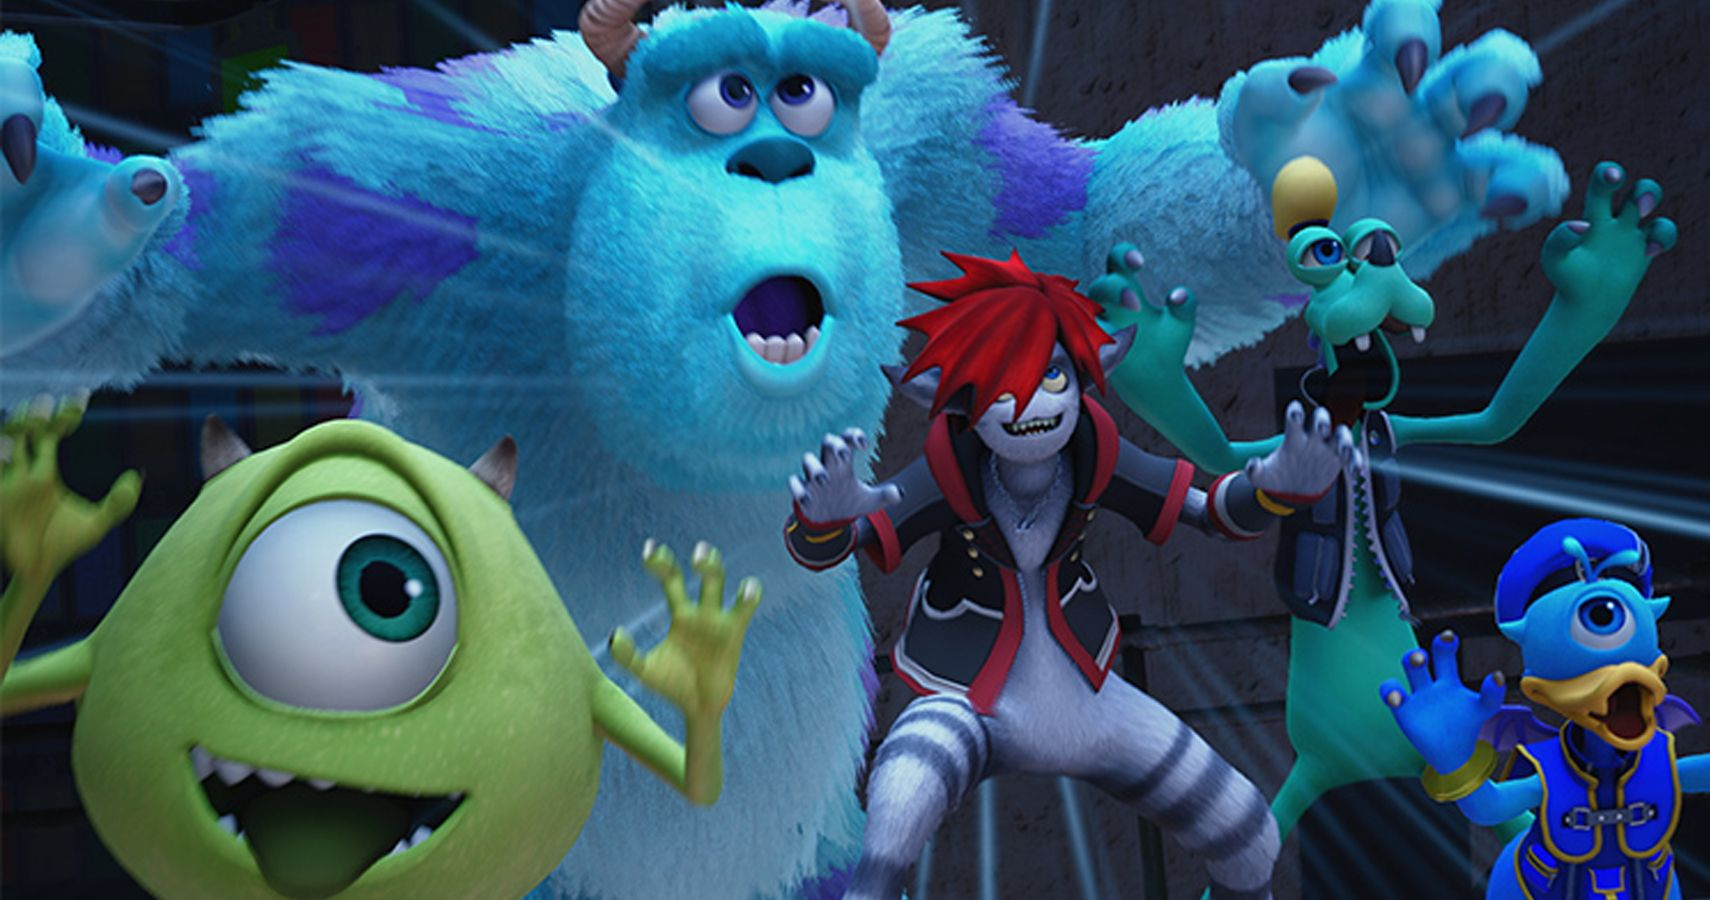 15 Unannounced Kingdom Hearts 3 Worlds We Need To See (And 10 That